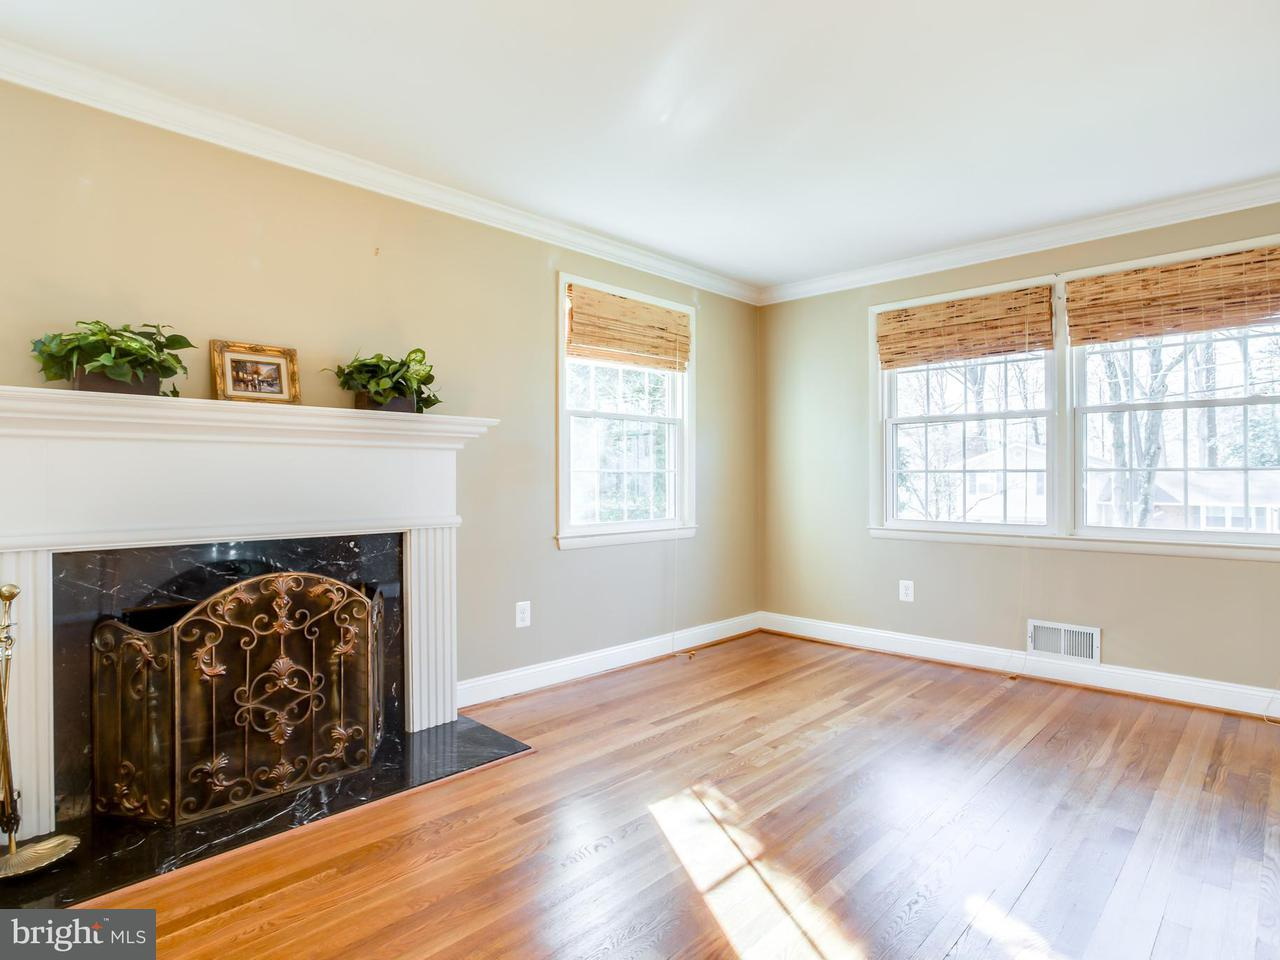 Additional photo for property listing at 10210 Shiloh Street 10210 Shiloh Street Fairfax, Virginia 22030 Verenigde Staten